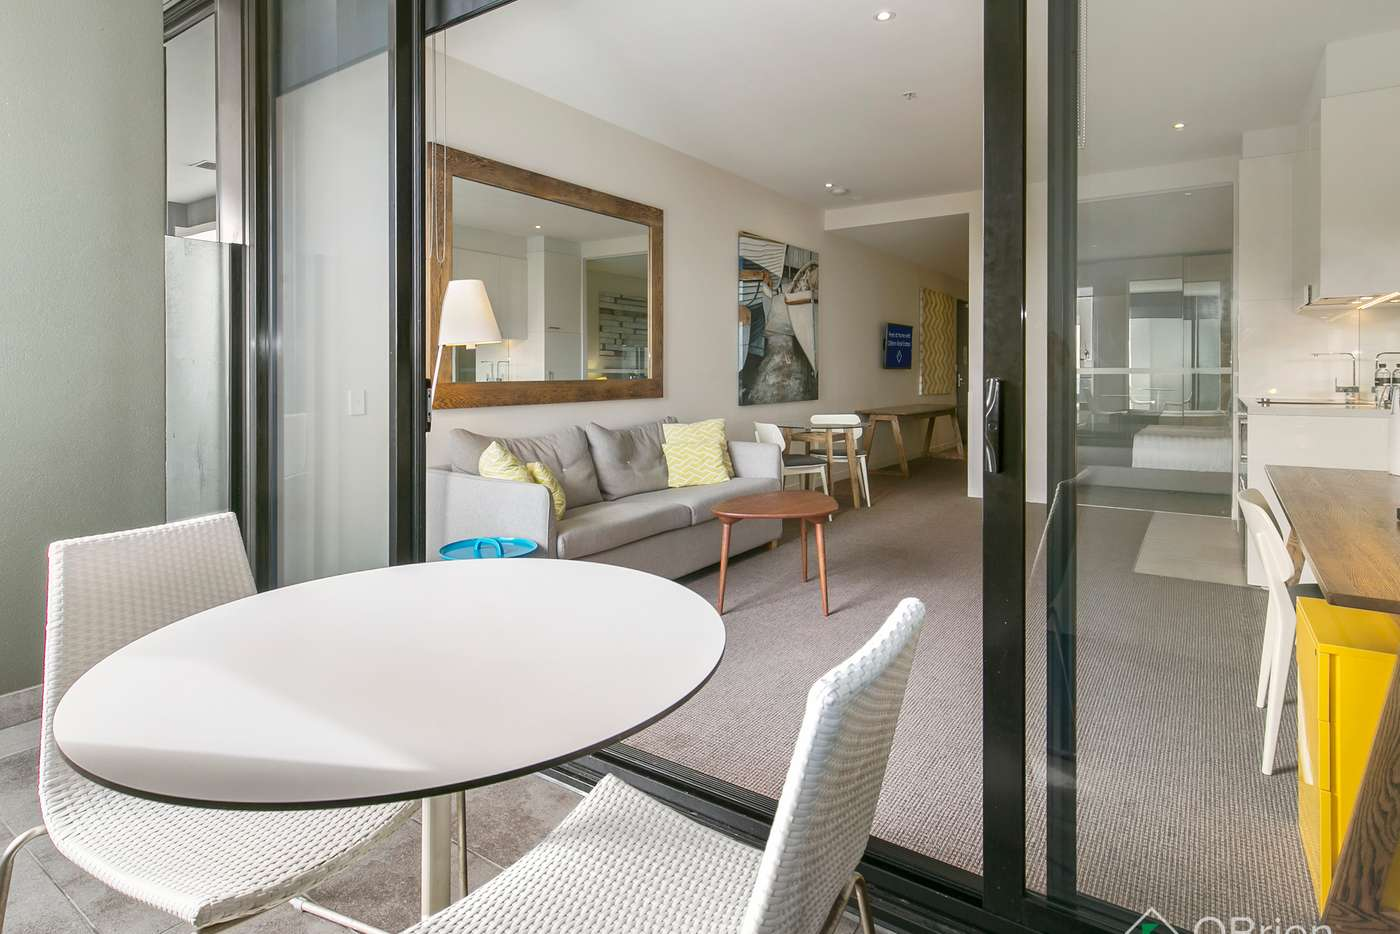 Main view of Homely apartment listing, 101/435-437 Nepean Highway, Frankston VIC 3199